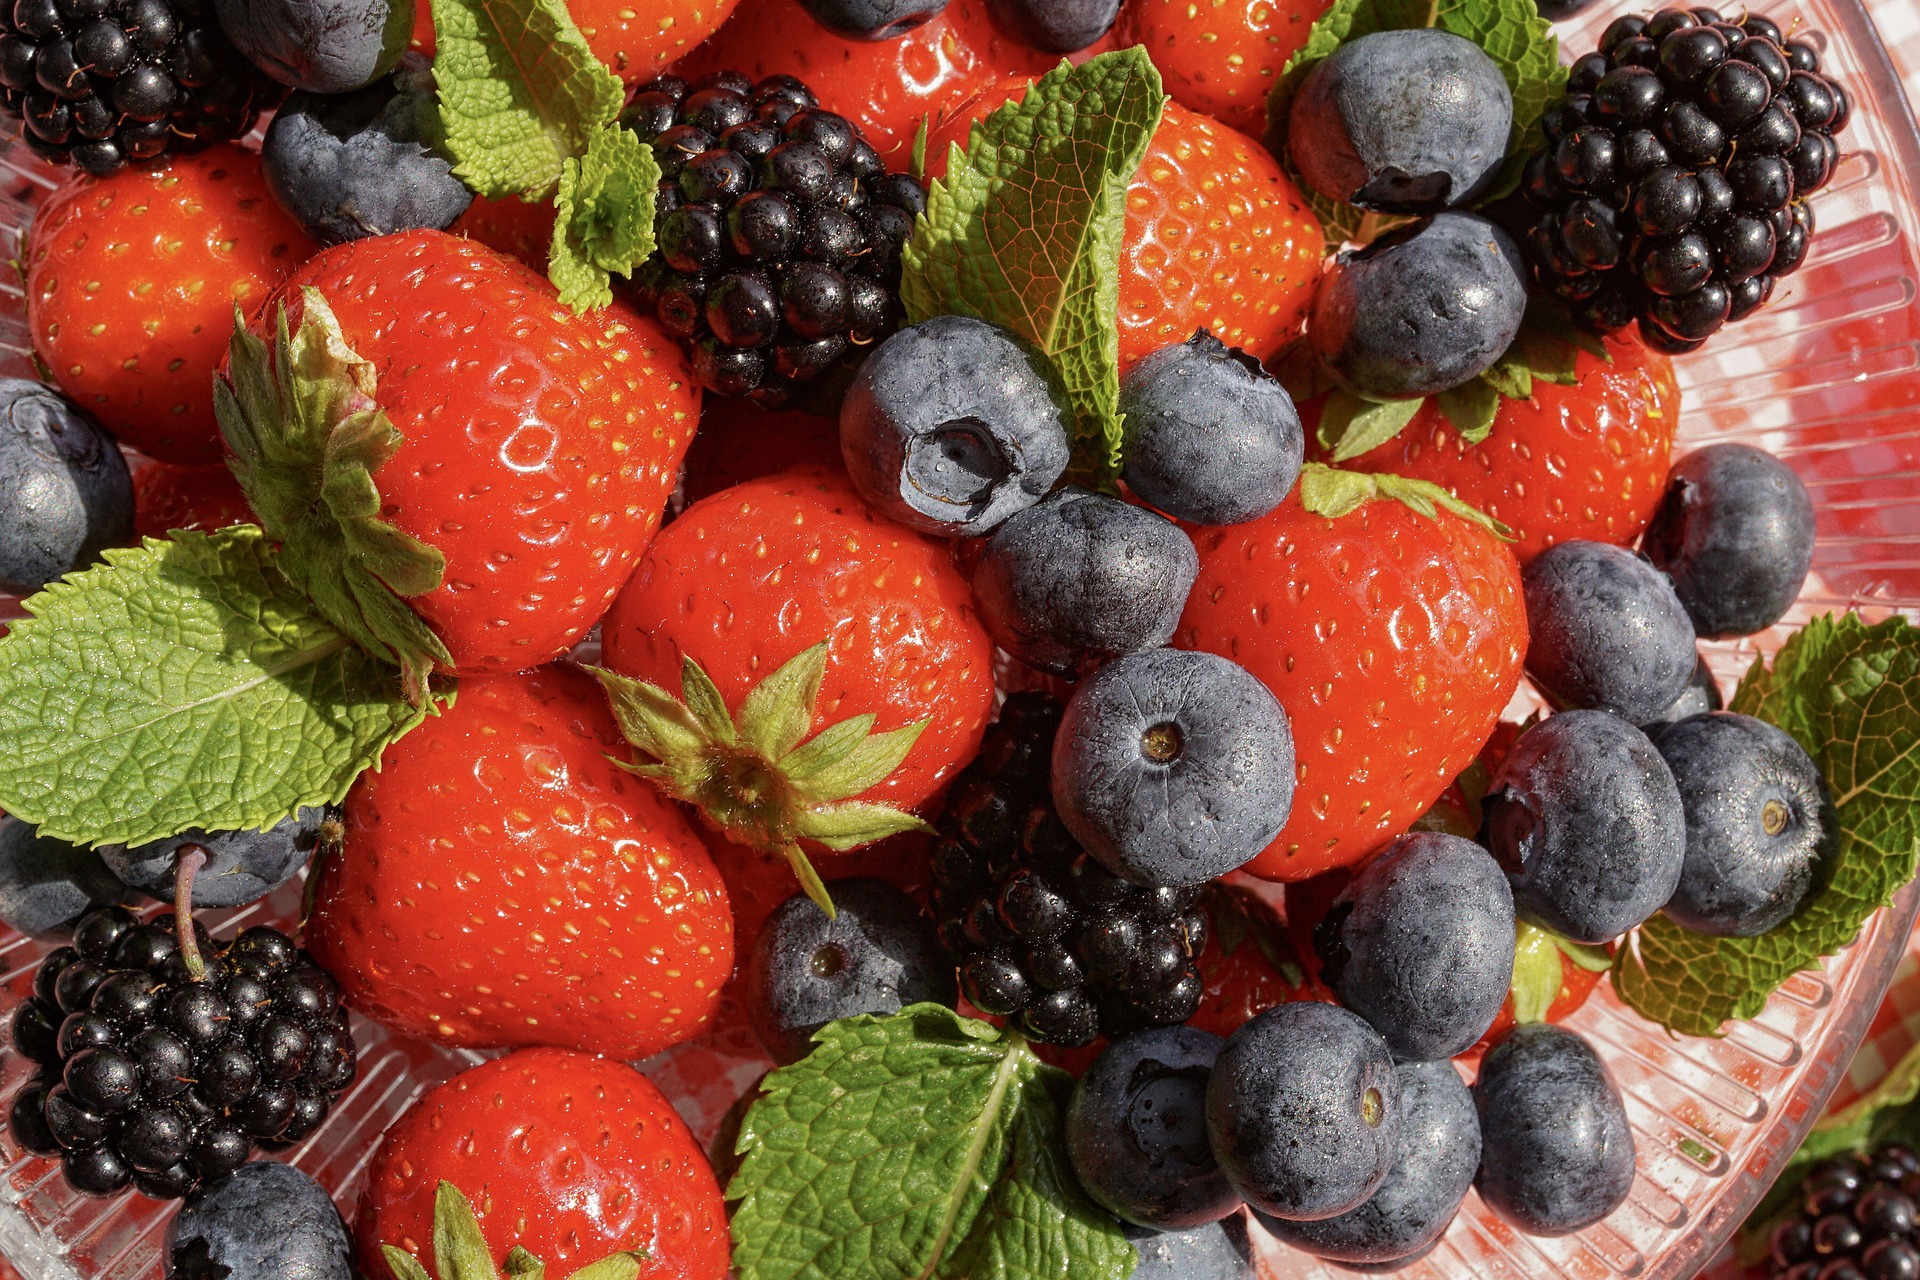 Anthocyanin: A new buzzword for the ingredients industry